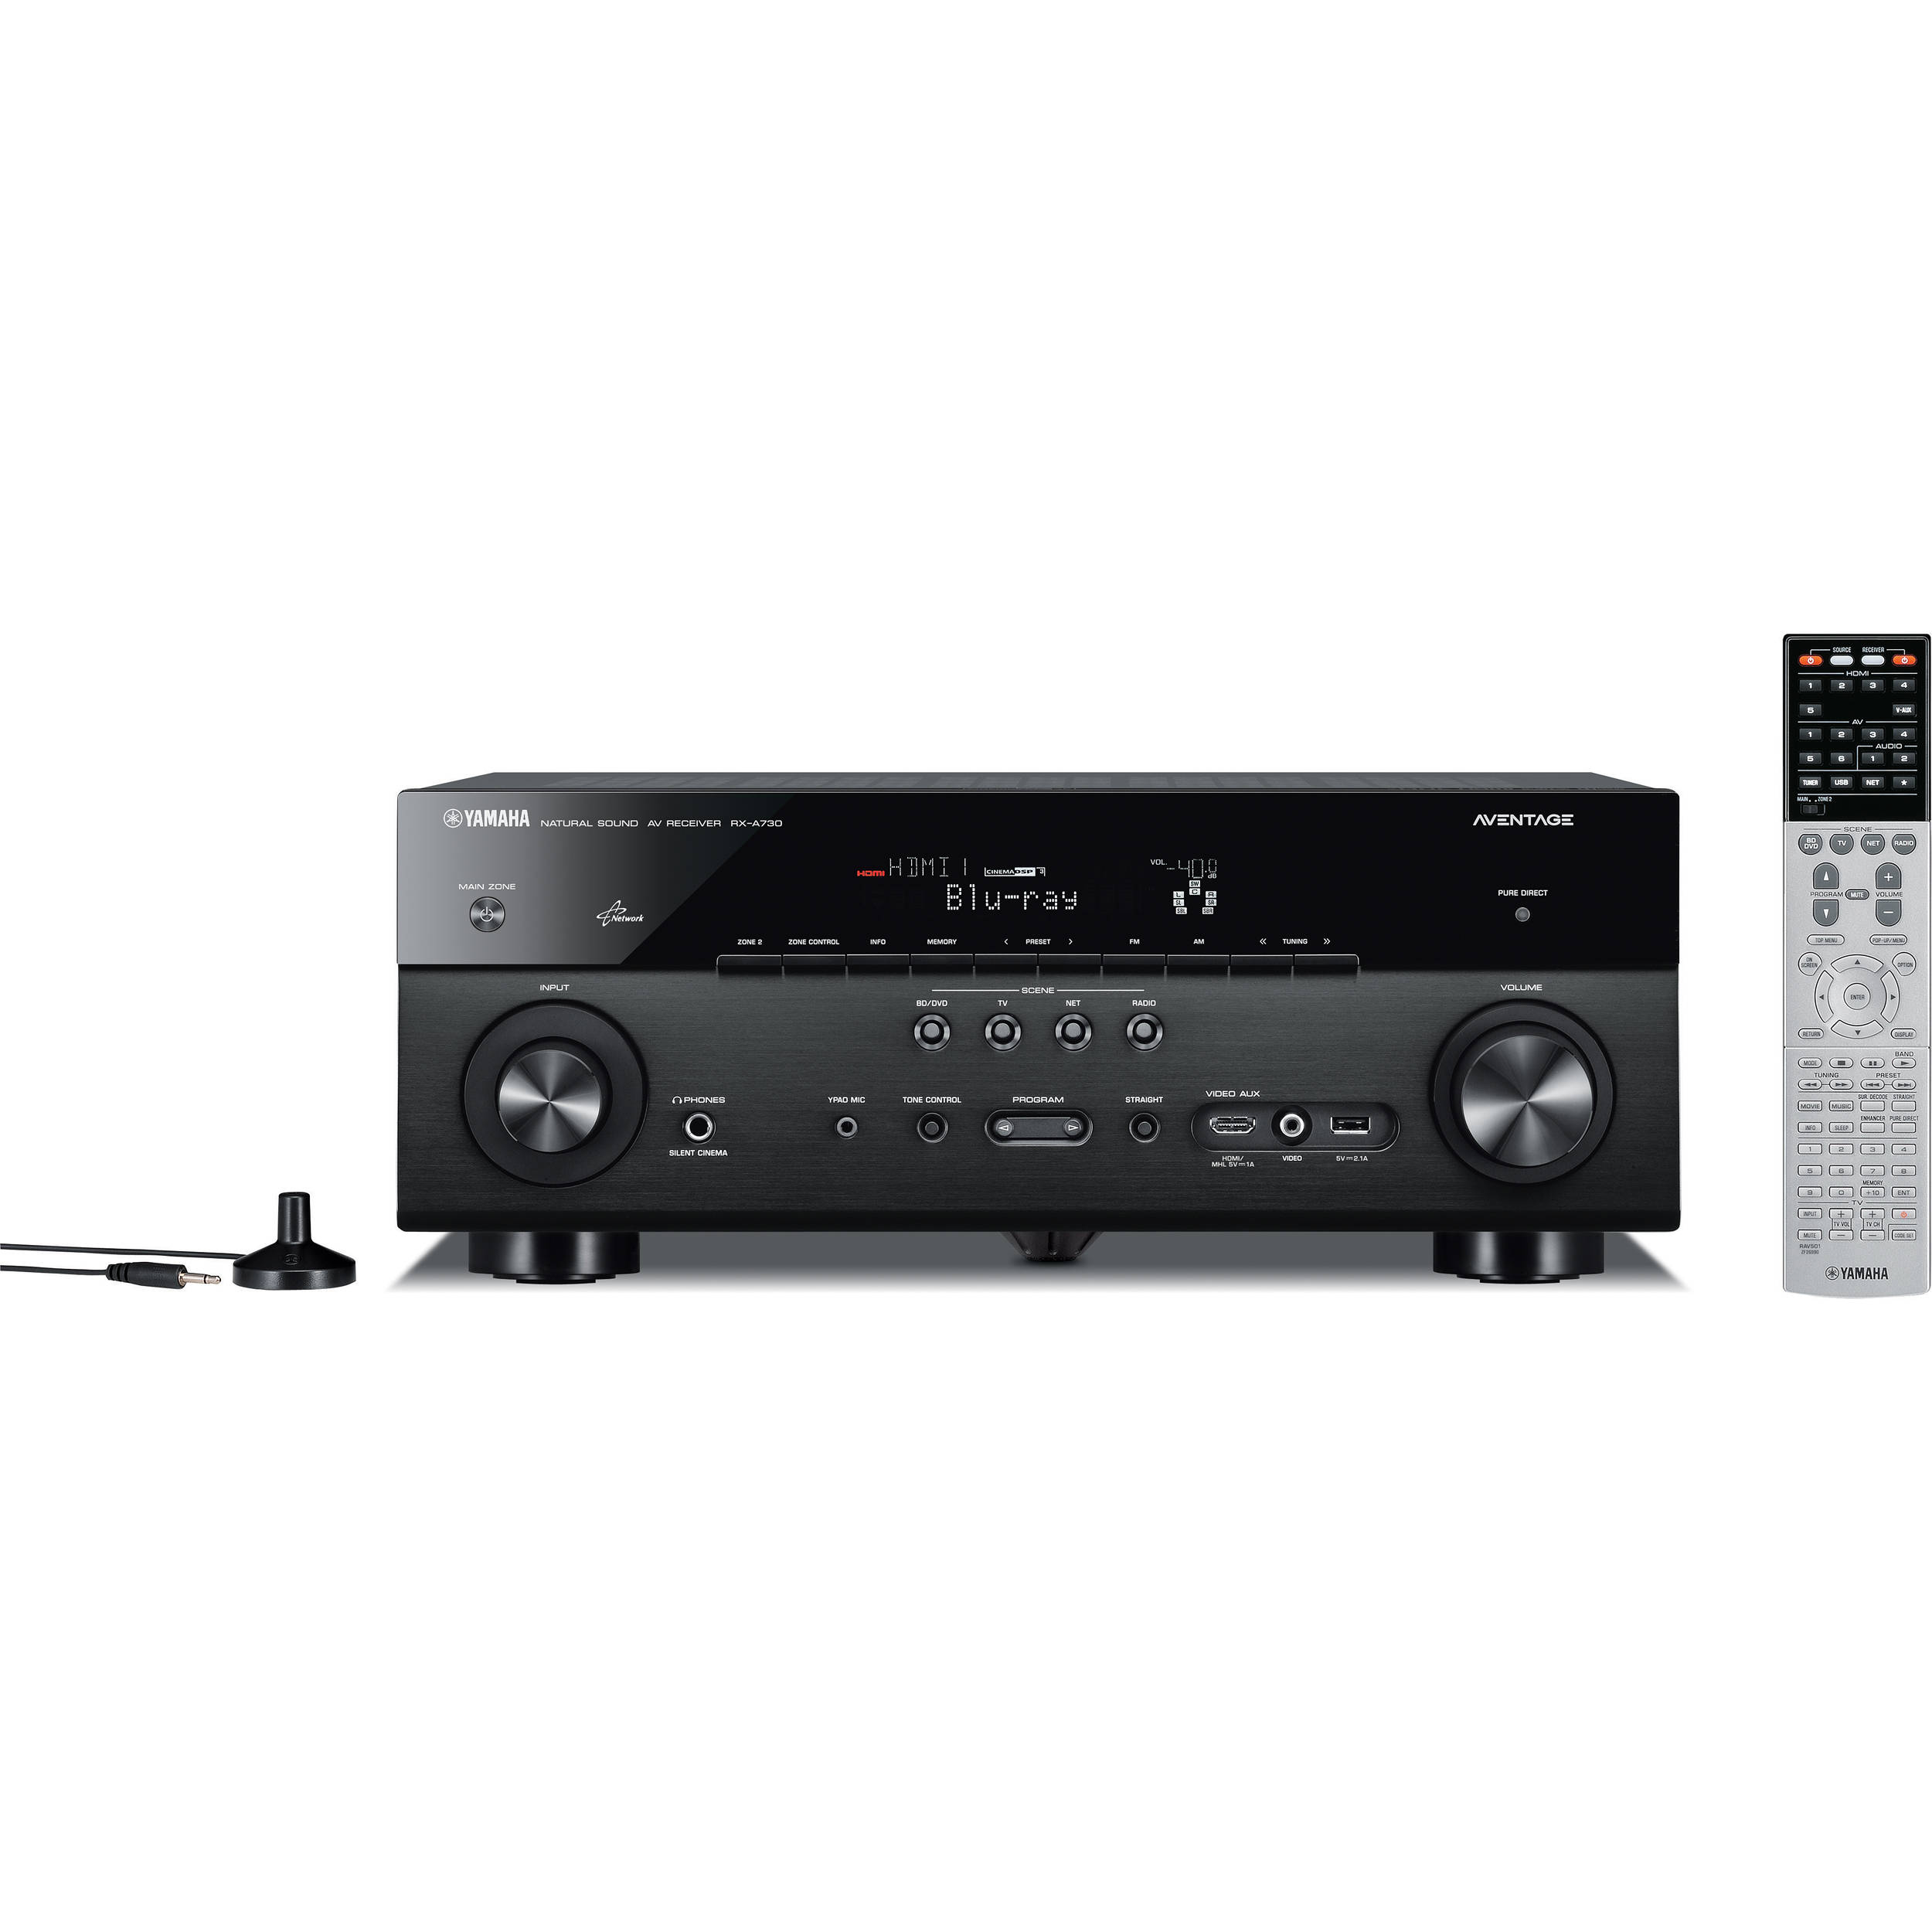 Yamaha AVENTAGE RX-A730 7 2-Channel Network AV Receiver